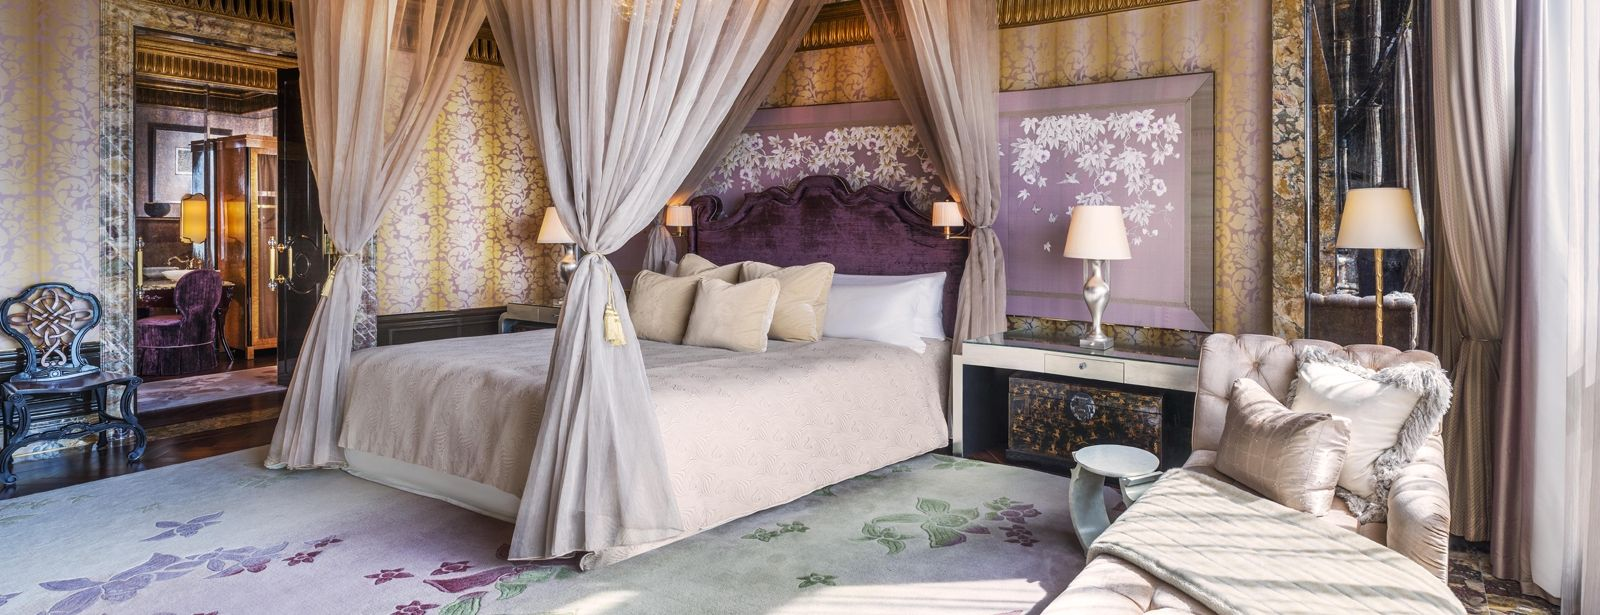 The 5 most expensive luxurious hotel suites in singapore - 2 bedroom hotel suites singapore ...